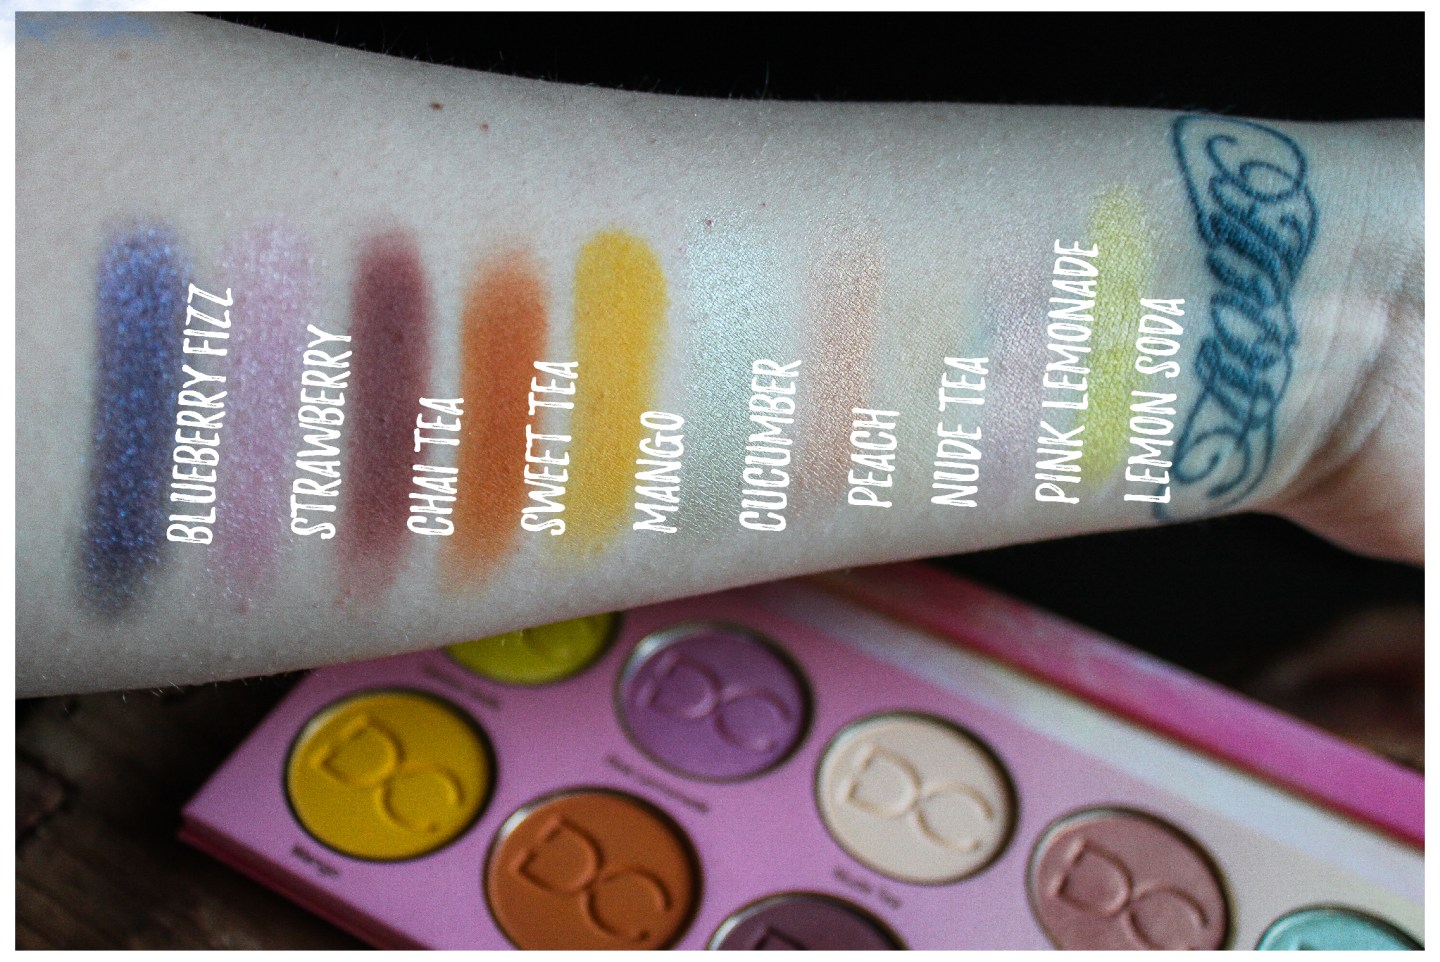 Dominique Cosmetics Lemonade Palette Swatches